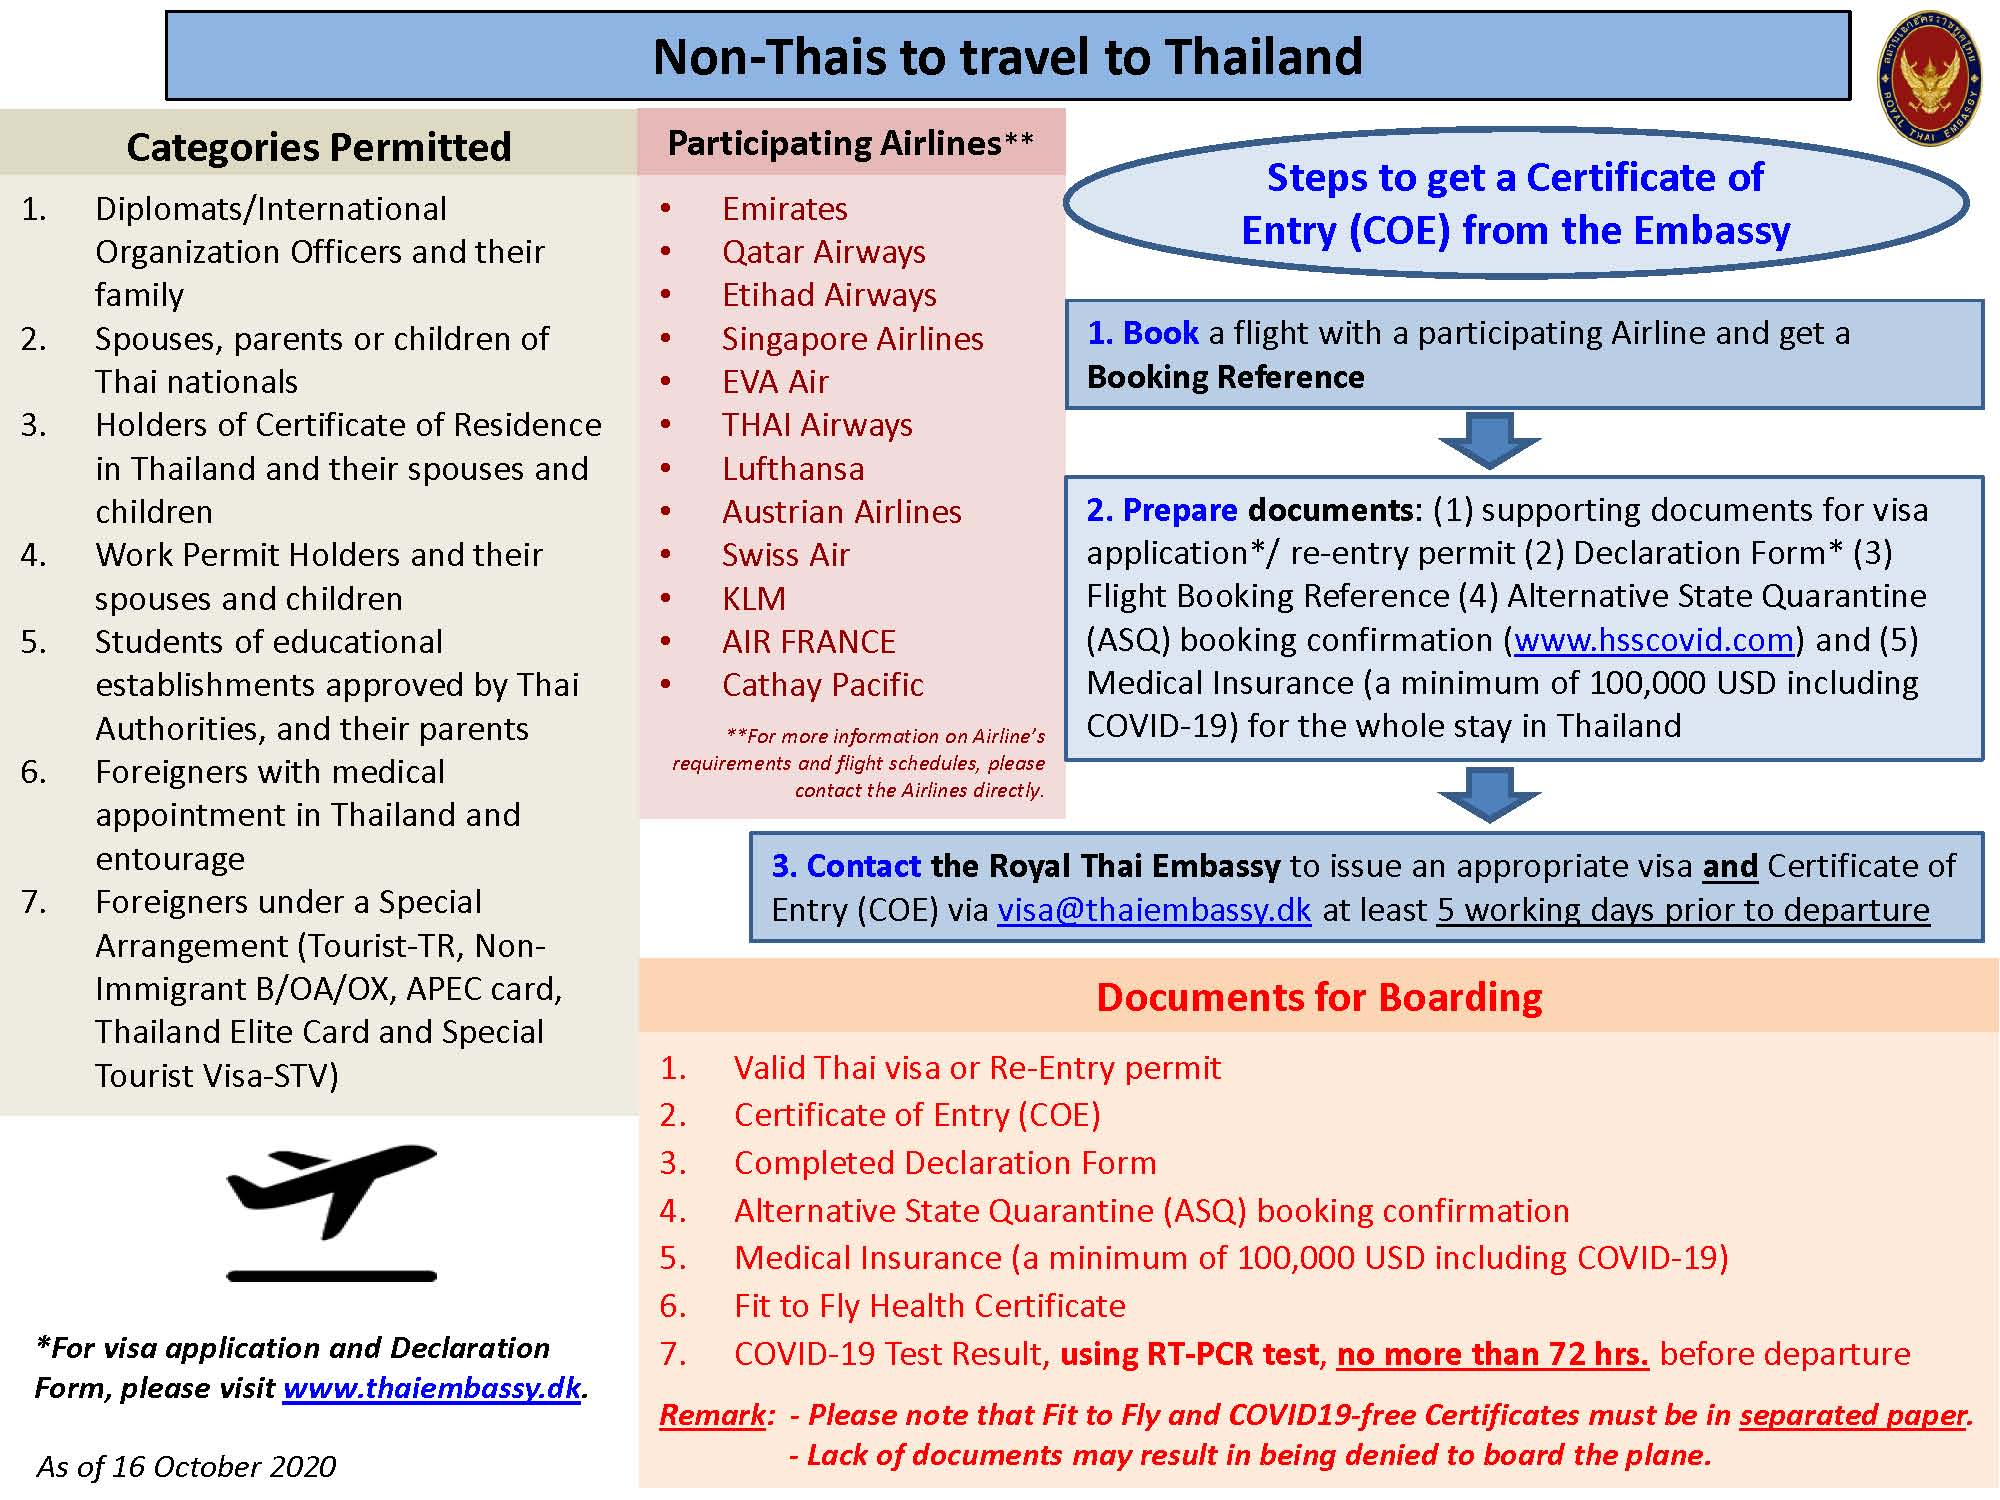 thaiguide.dk/images/forum/covid19/procedure-til-thailand-16-10-20.jpg